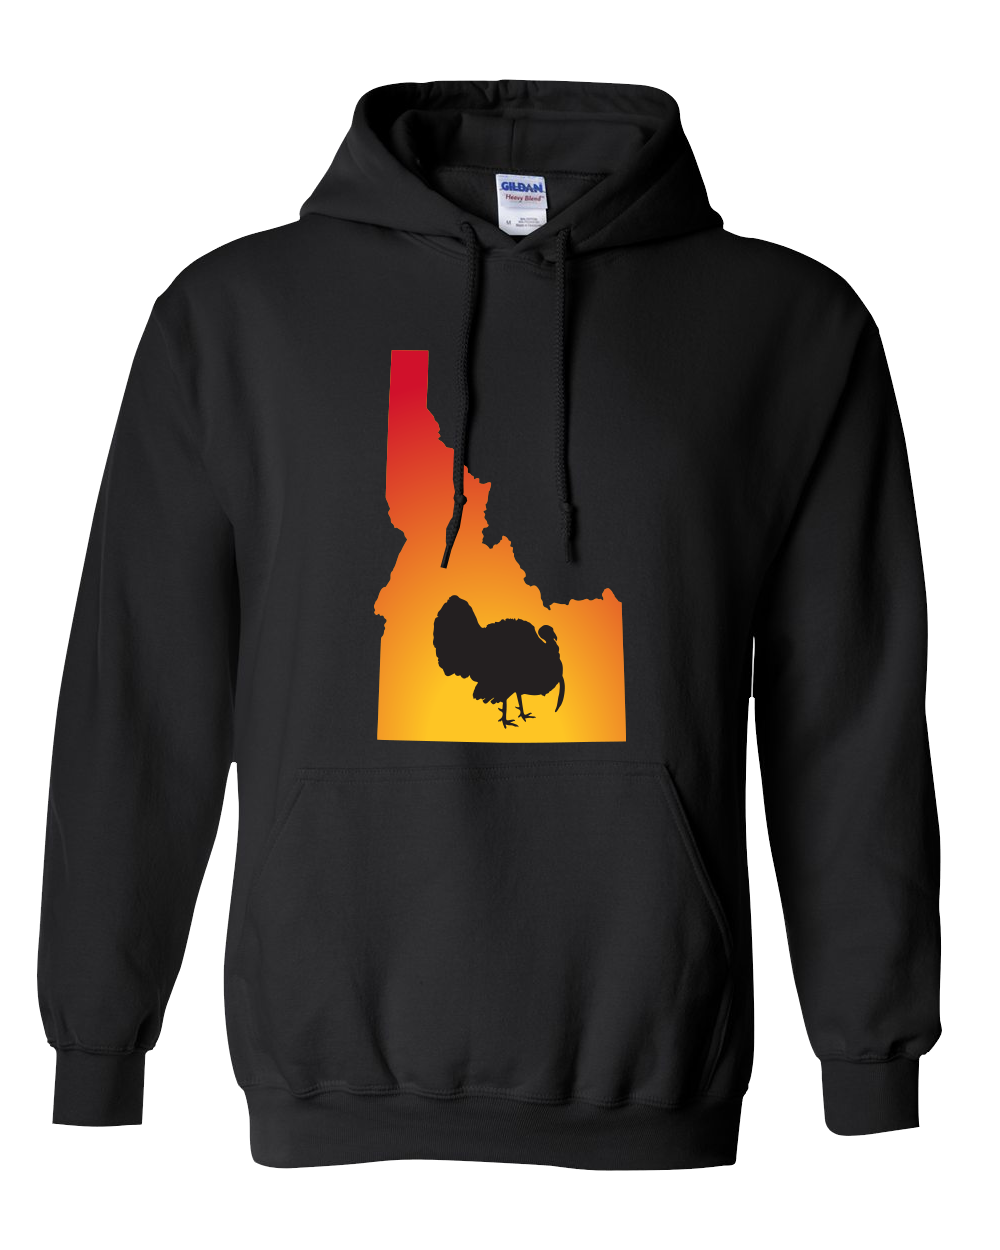 Pullover Hooded Sweatshirt Idaho Black Turkey Vibrant Design High Quality Tight Knit Ring Spun Low Maintenance Cotton Printed With The Newest Available Color Transfer Technology